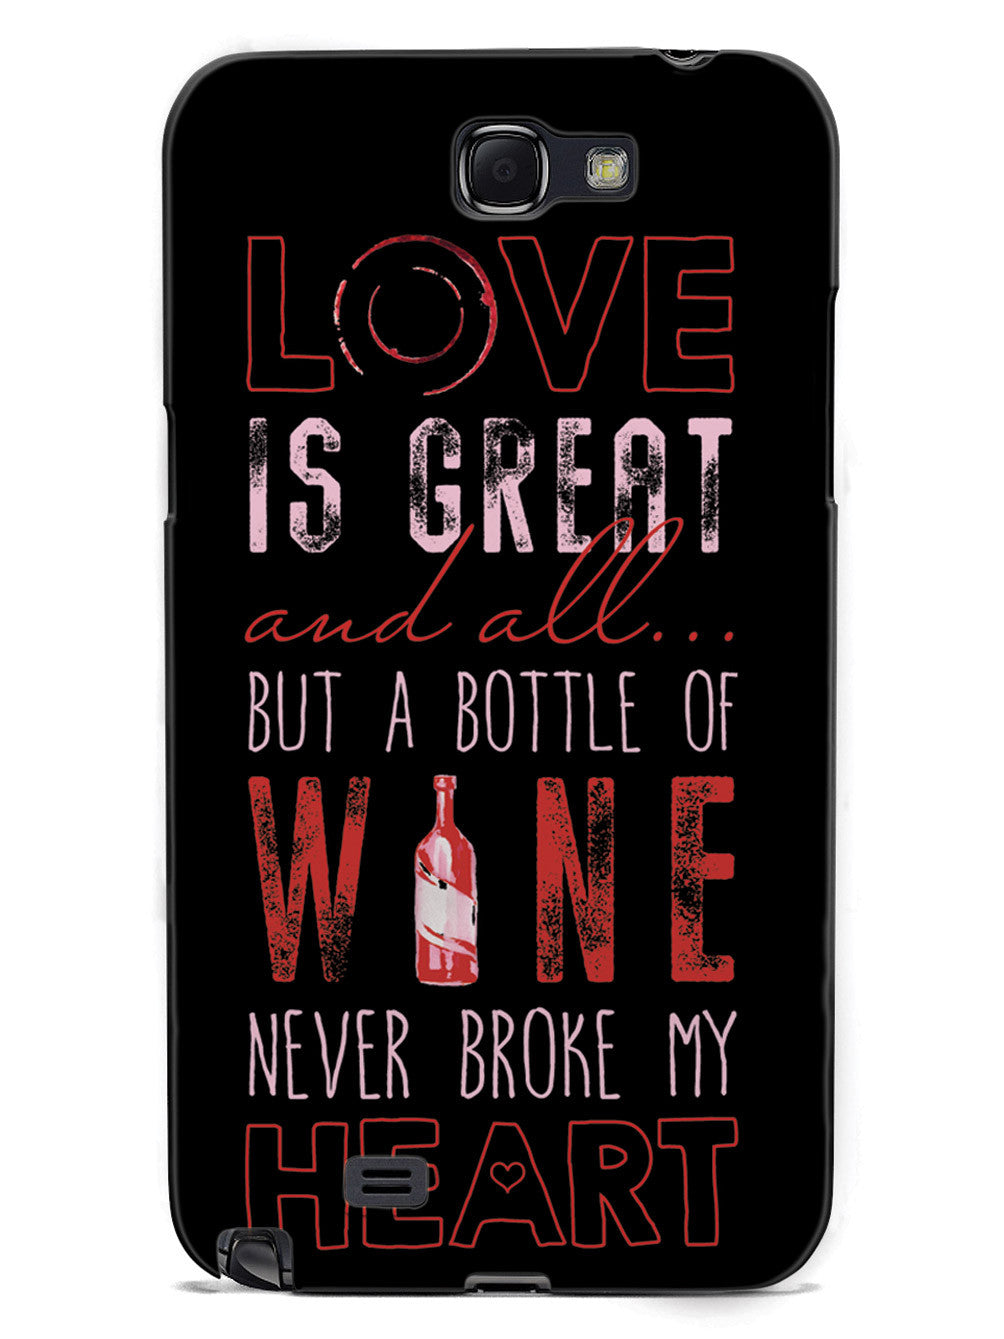 A Bottle of Wine Never Broke My Heart - Black Case